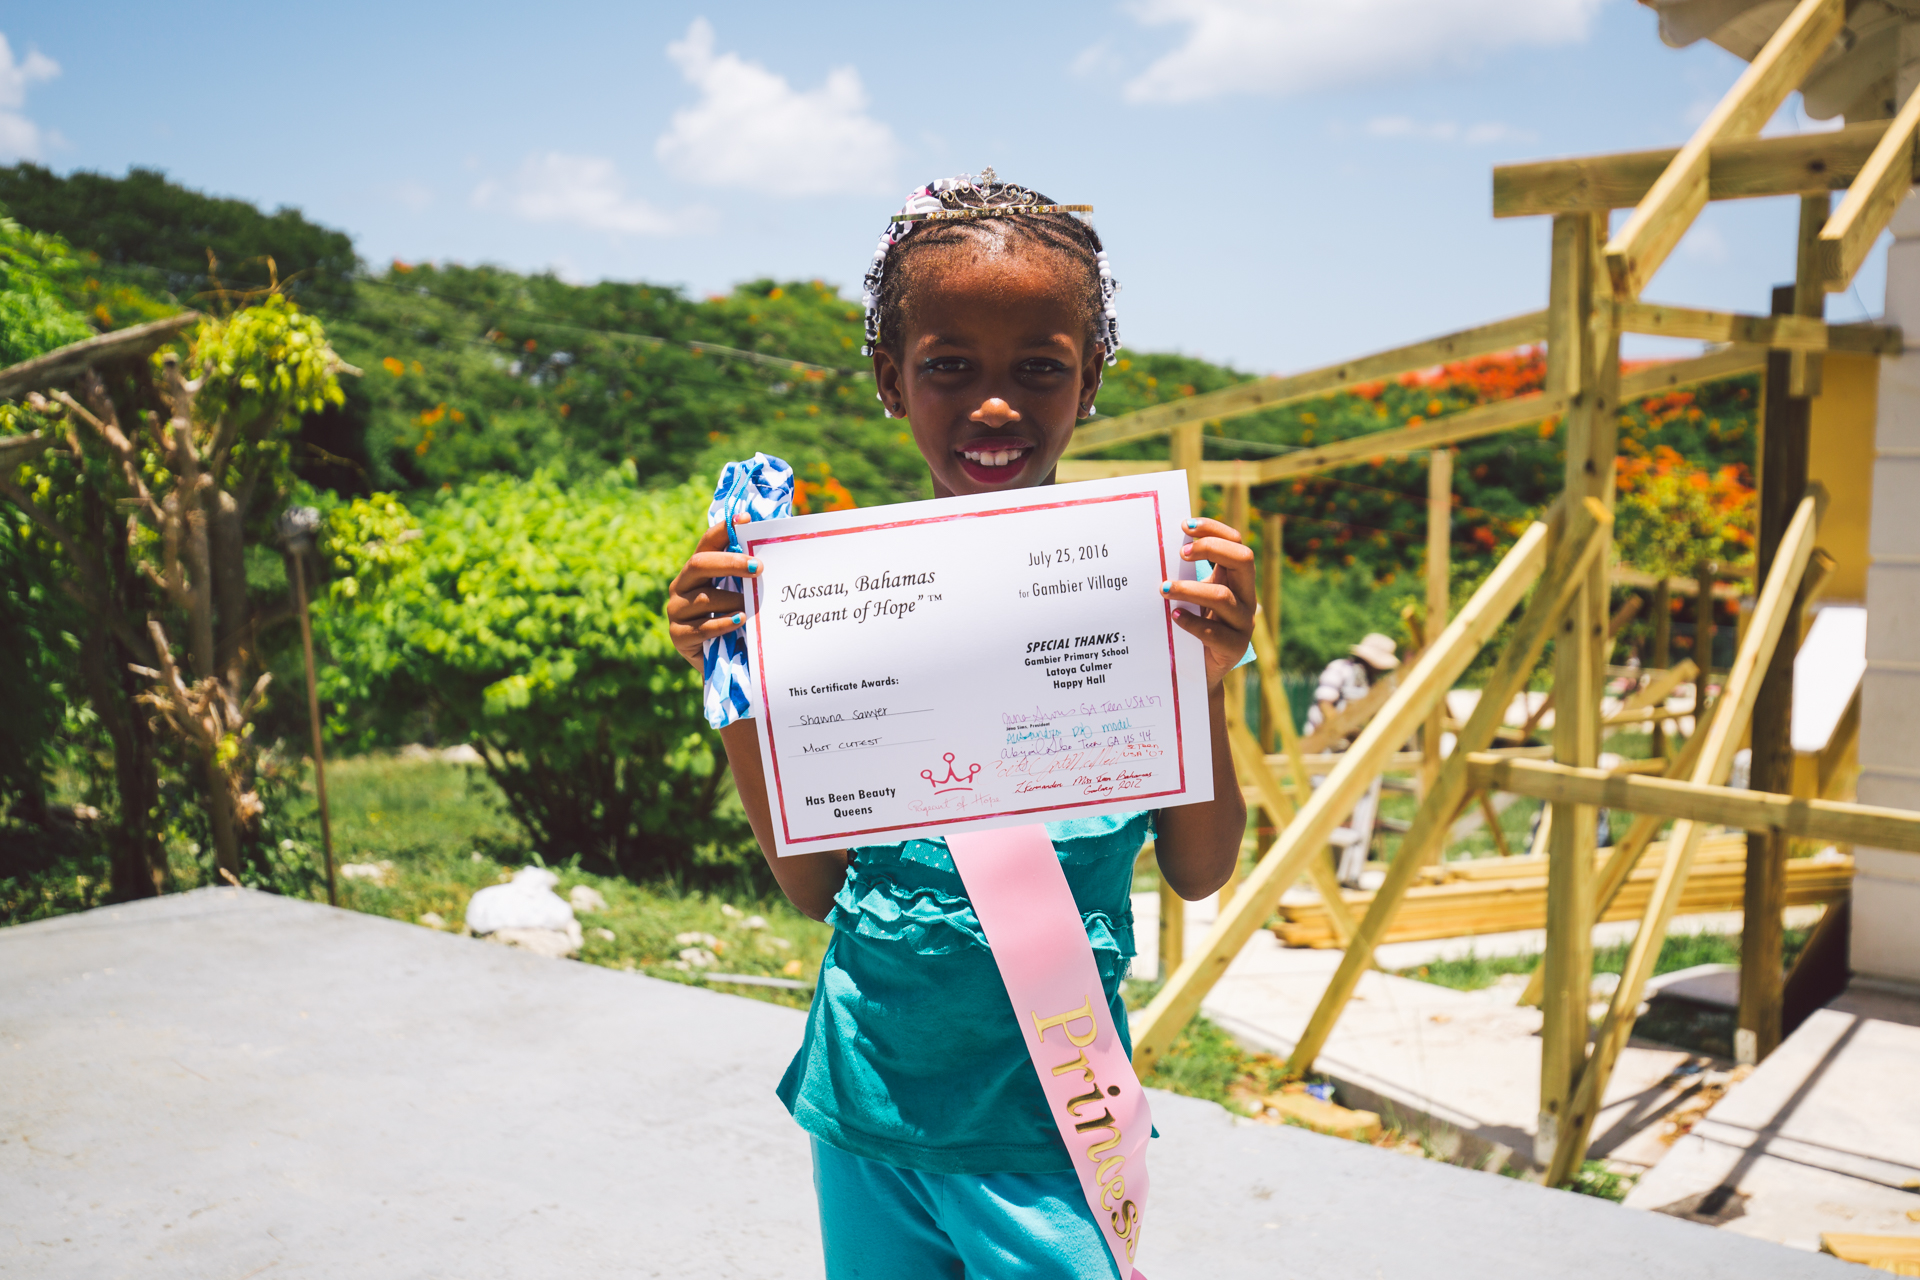 pageant of hope bahamas 2016-192.jpg